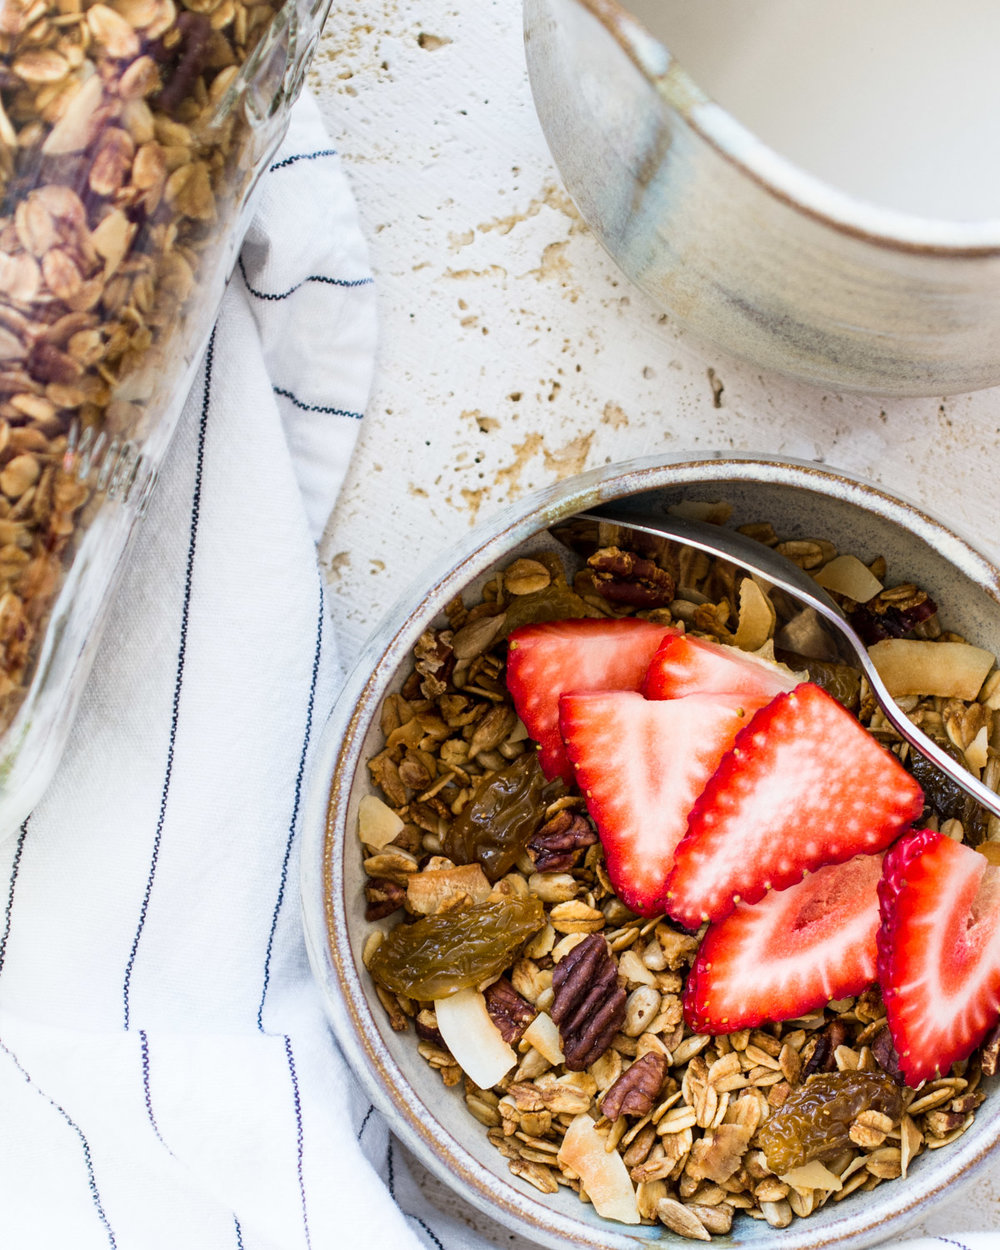 Lemon pecan granola topped with fresh California strawberries.